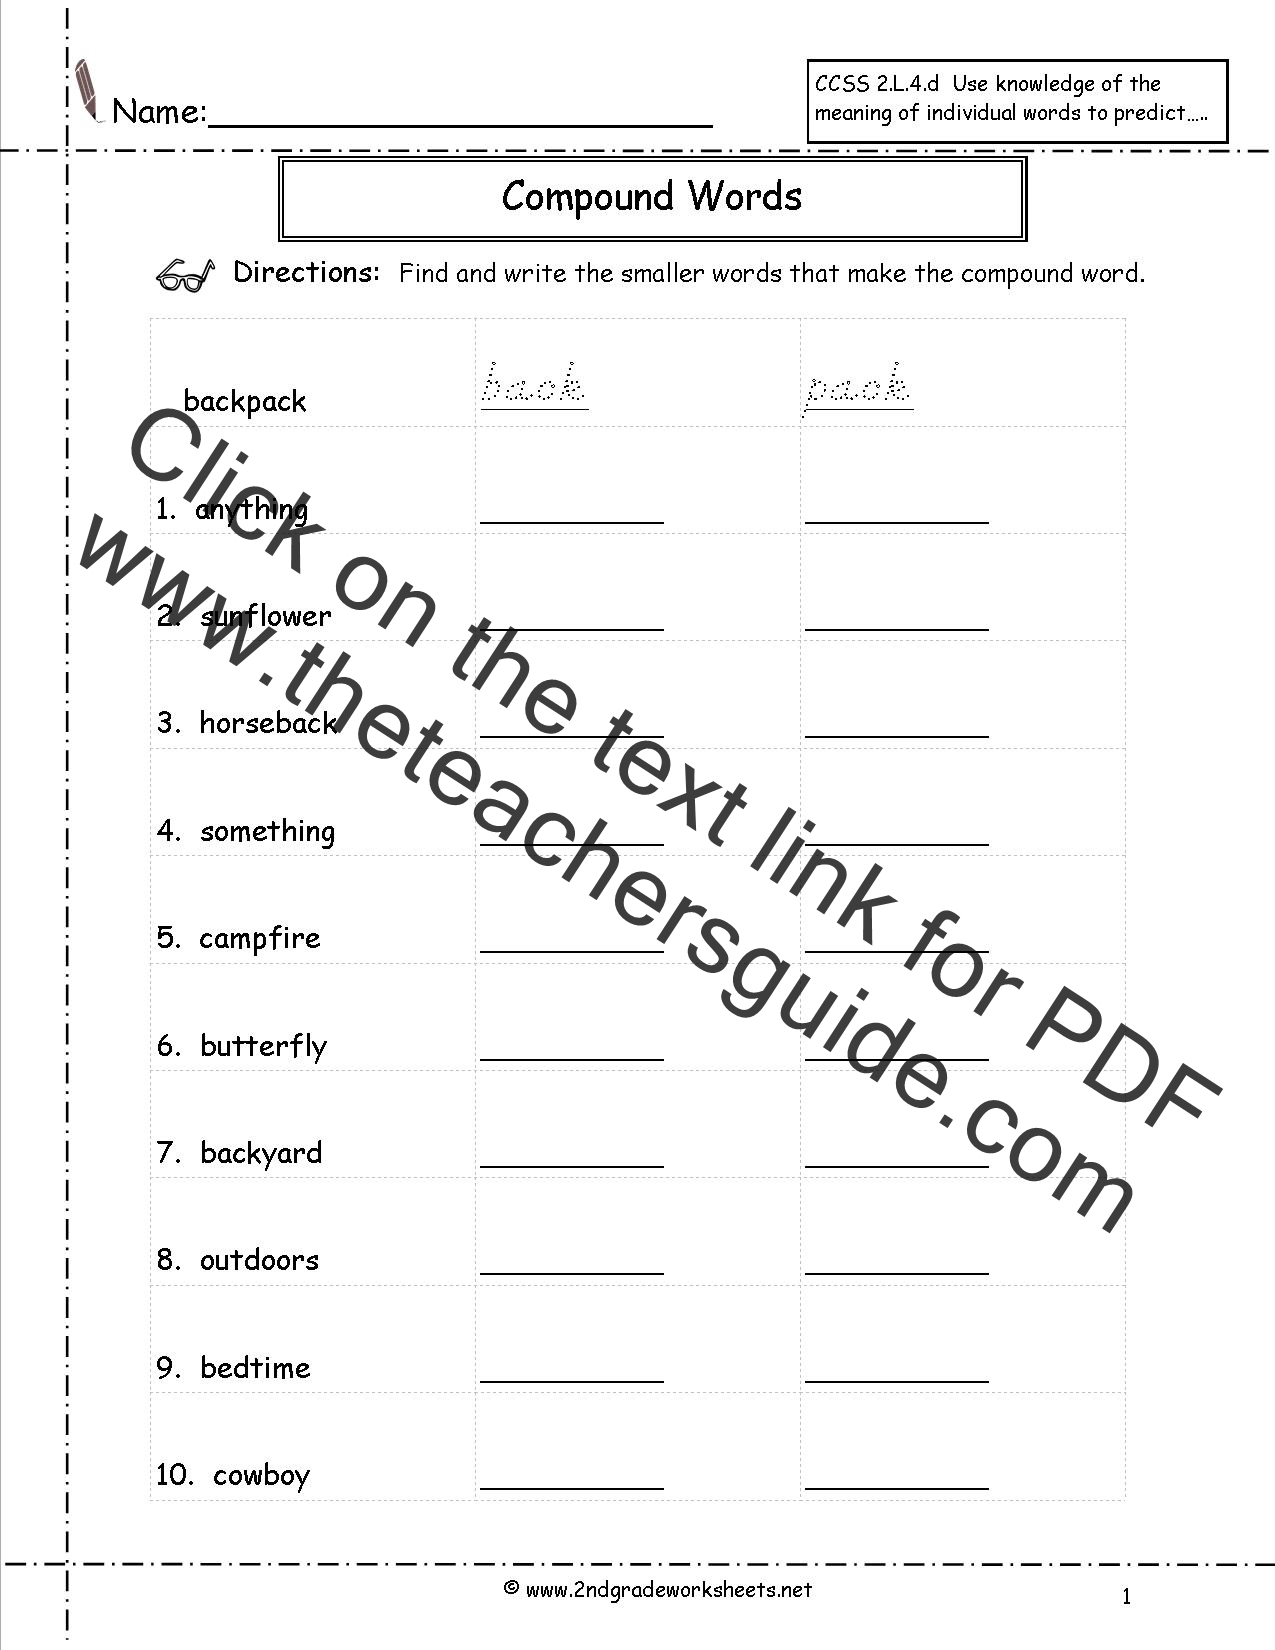 Worksheets Printable Worksheets For 2nd Grade compound words worksheets